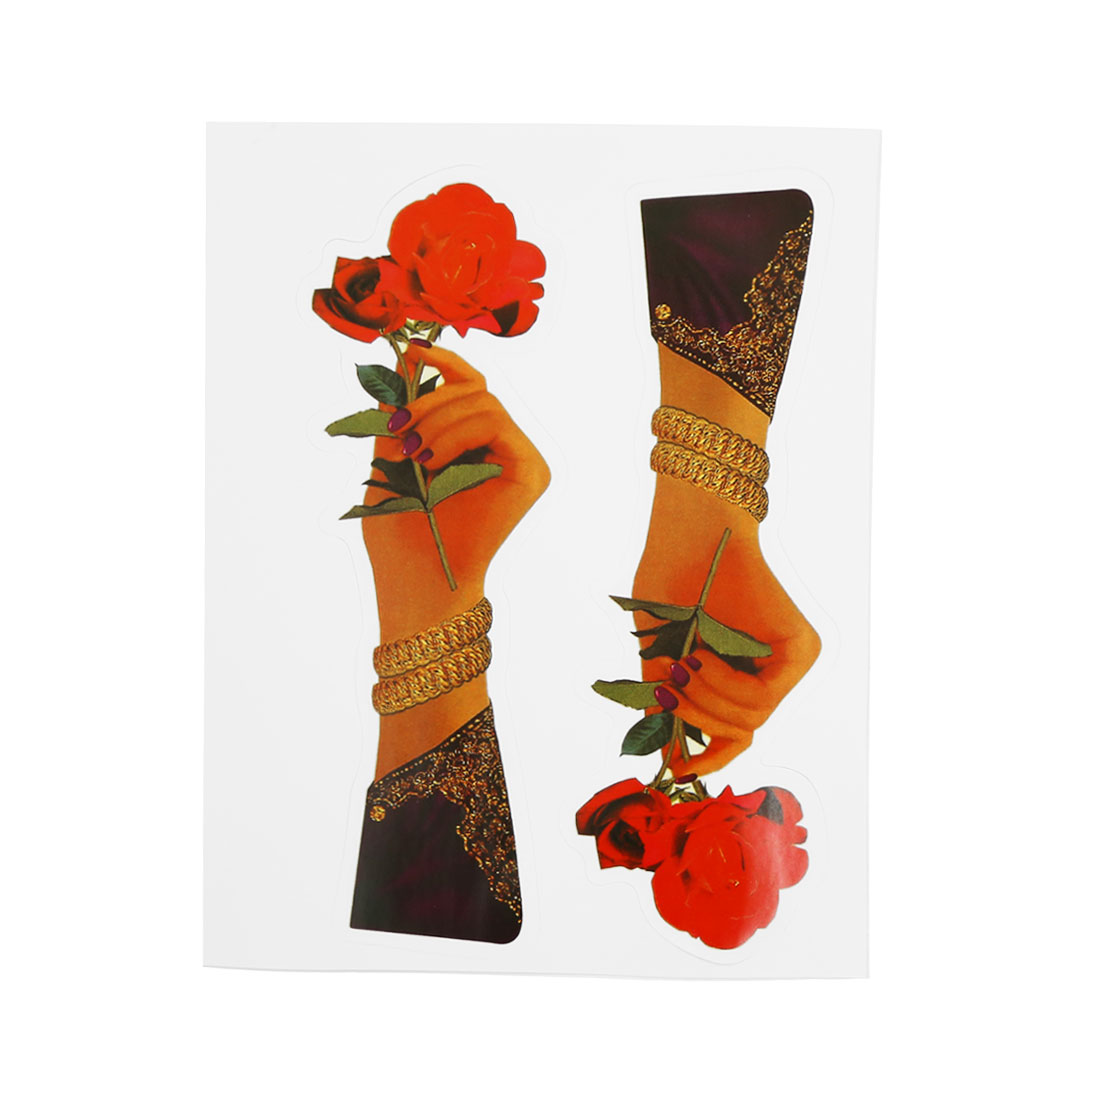 2D Style Hand Holding Flower Print Stick-on Decorative Sticker Decal for Car